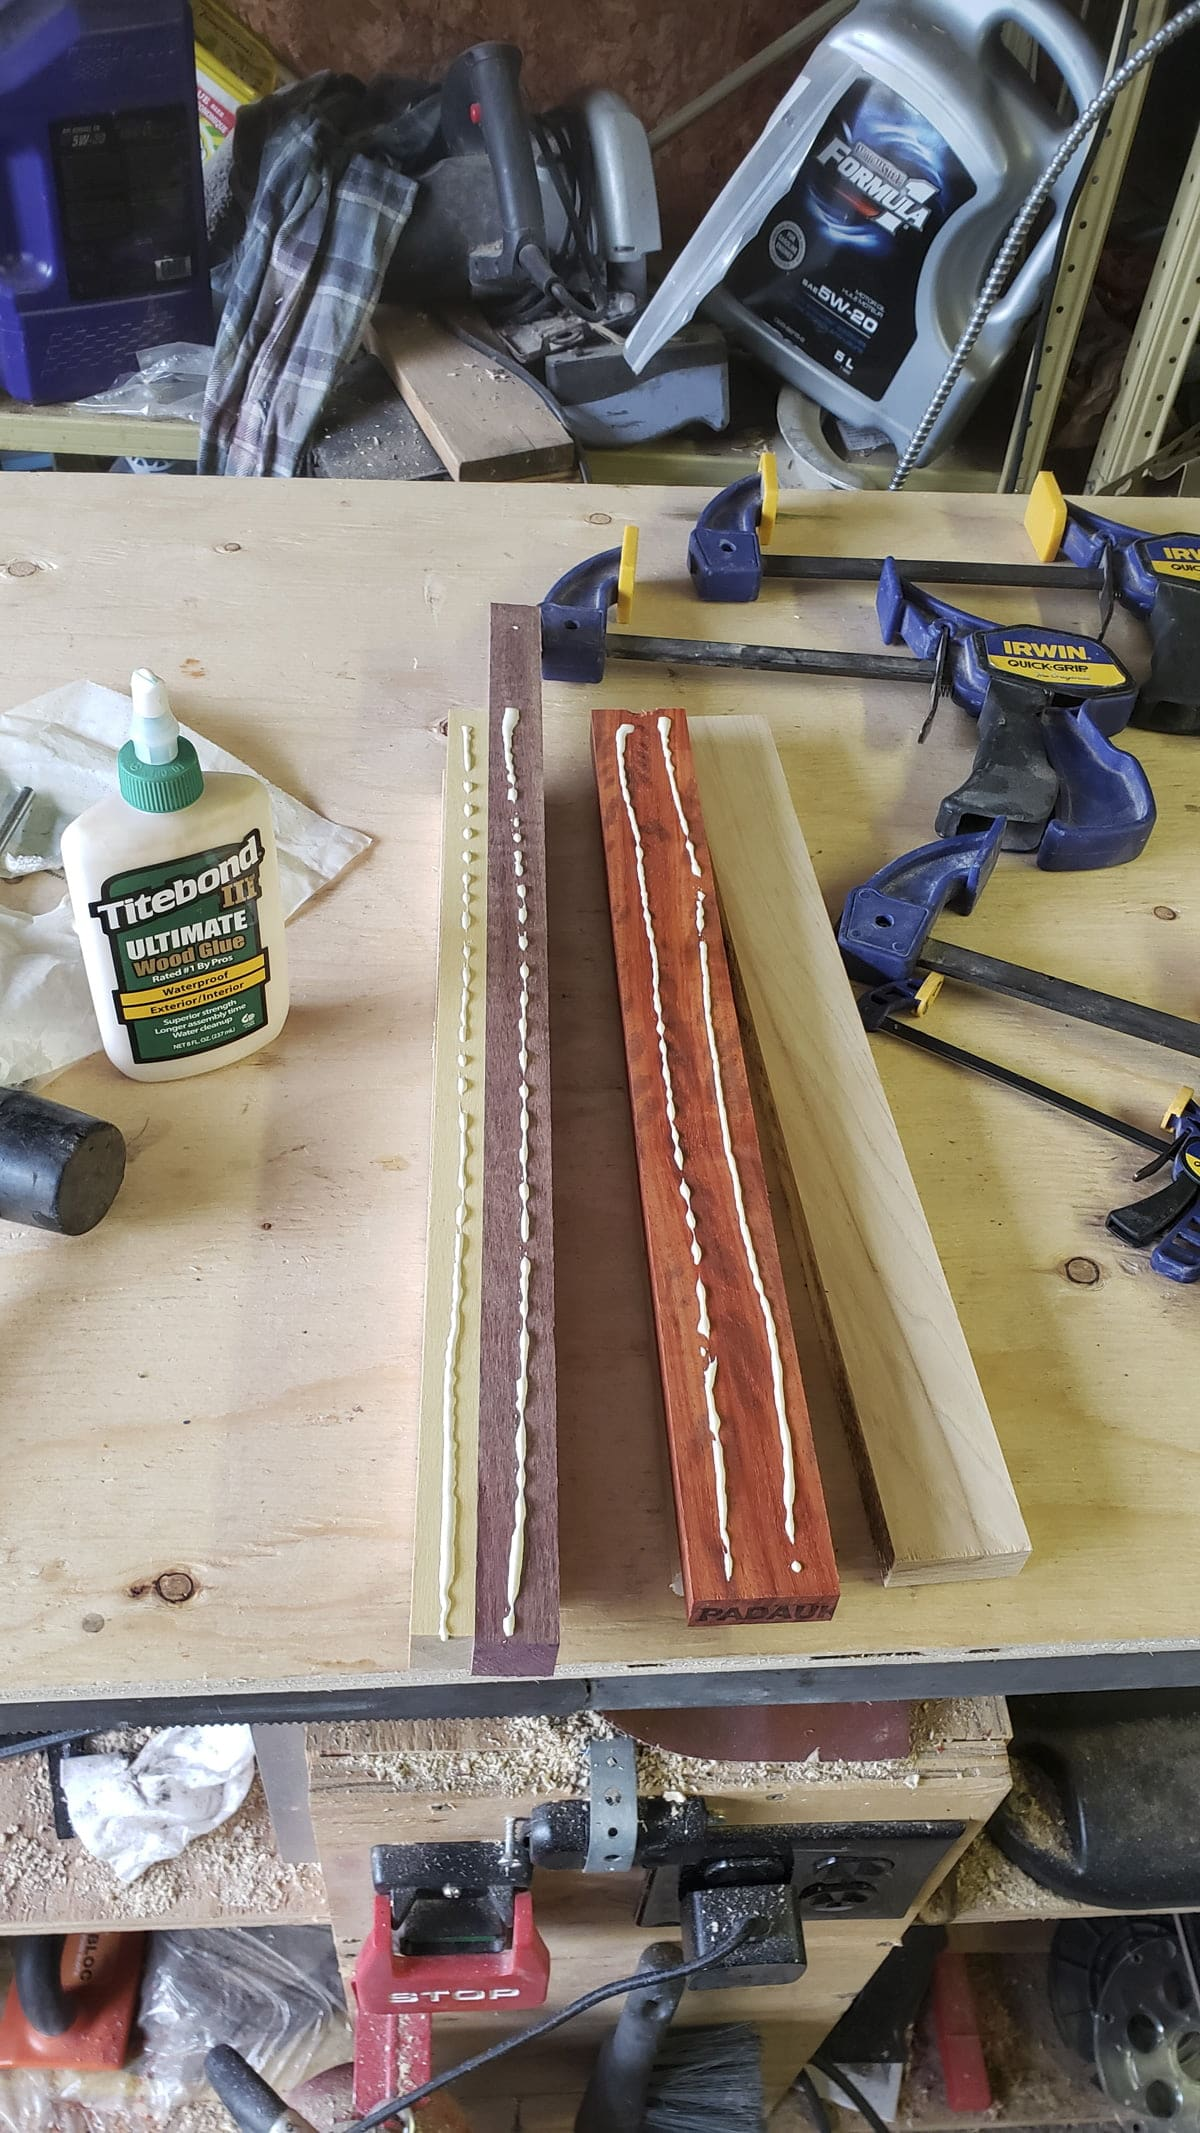 Two strips of different colored wood are on the surface of a table. Lines of glue has been applied to the tops of the wood.